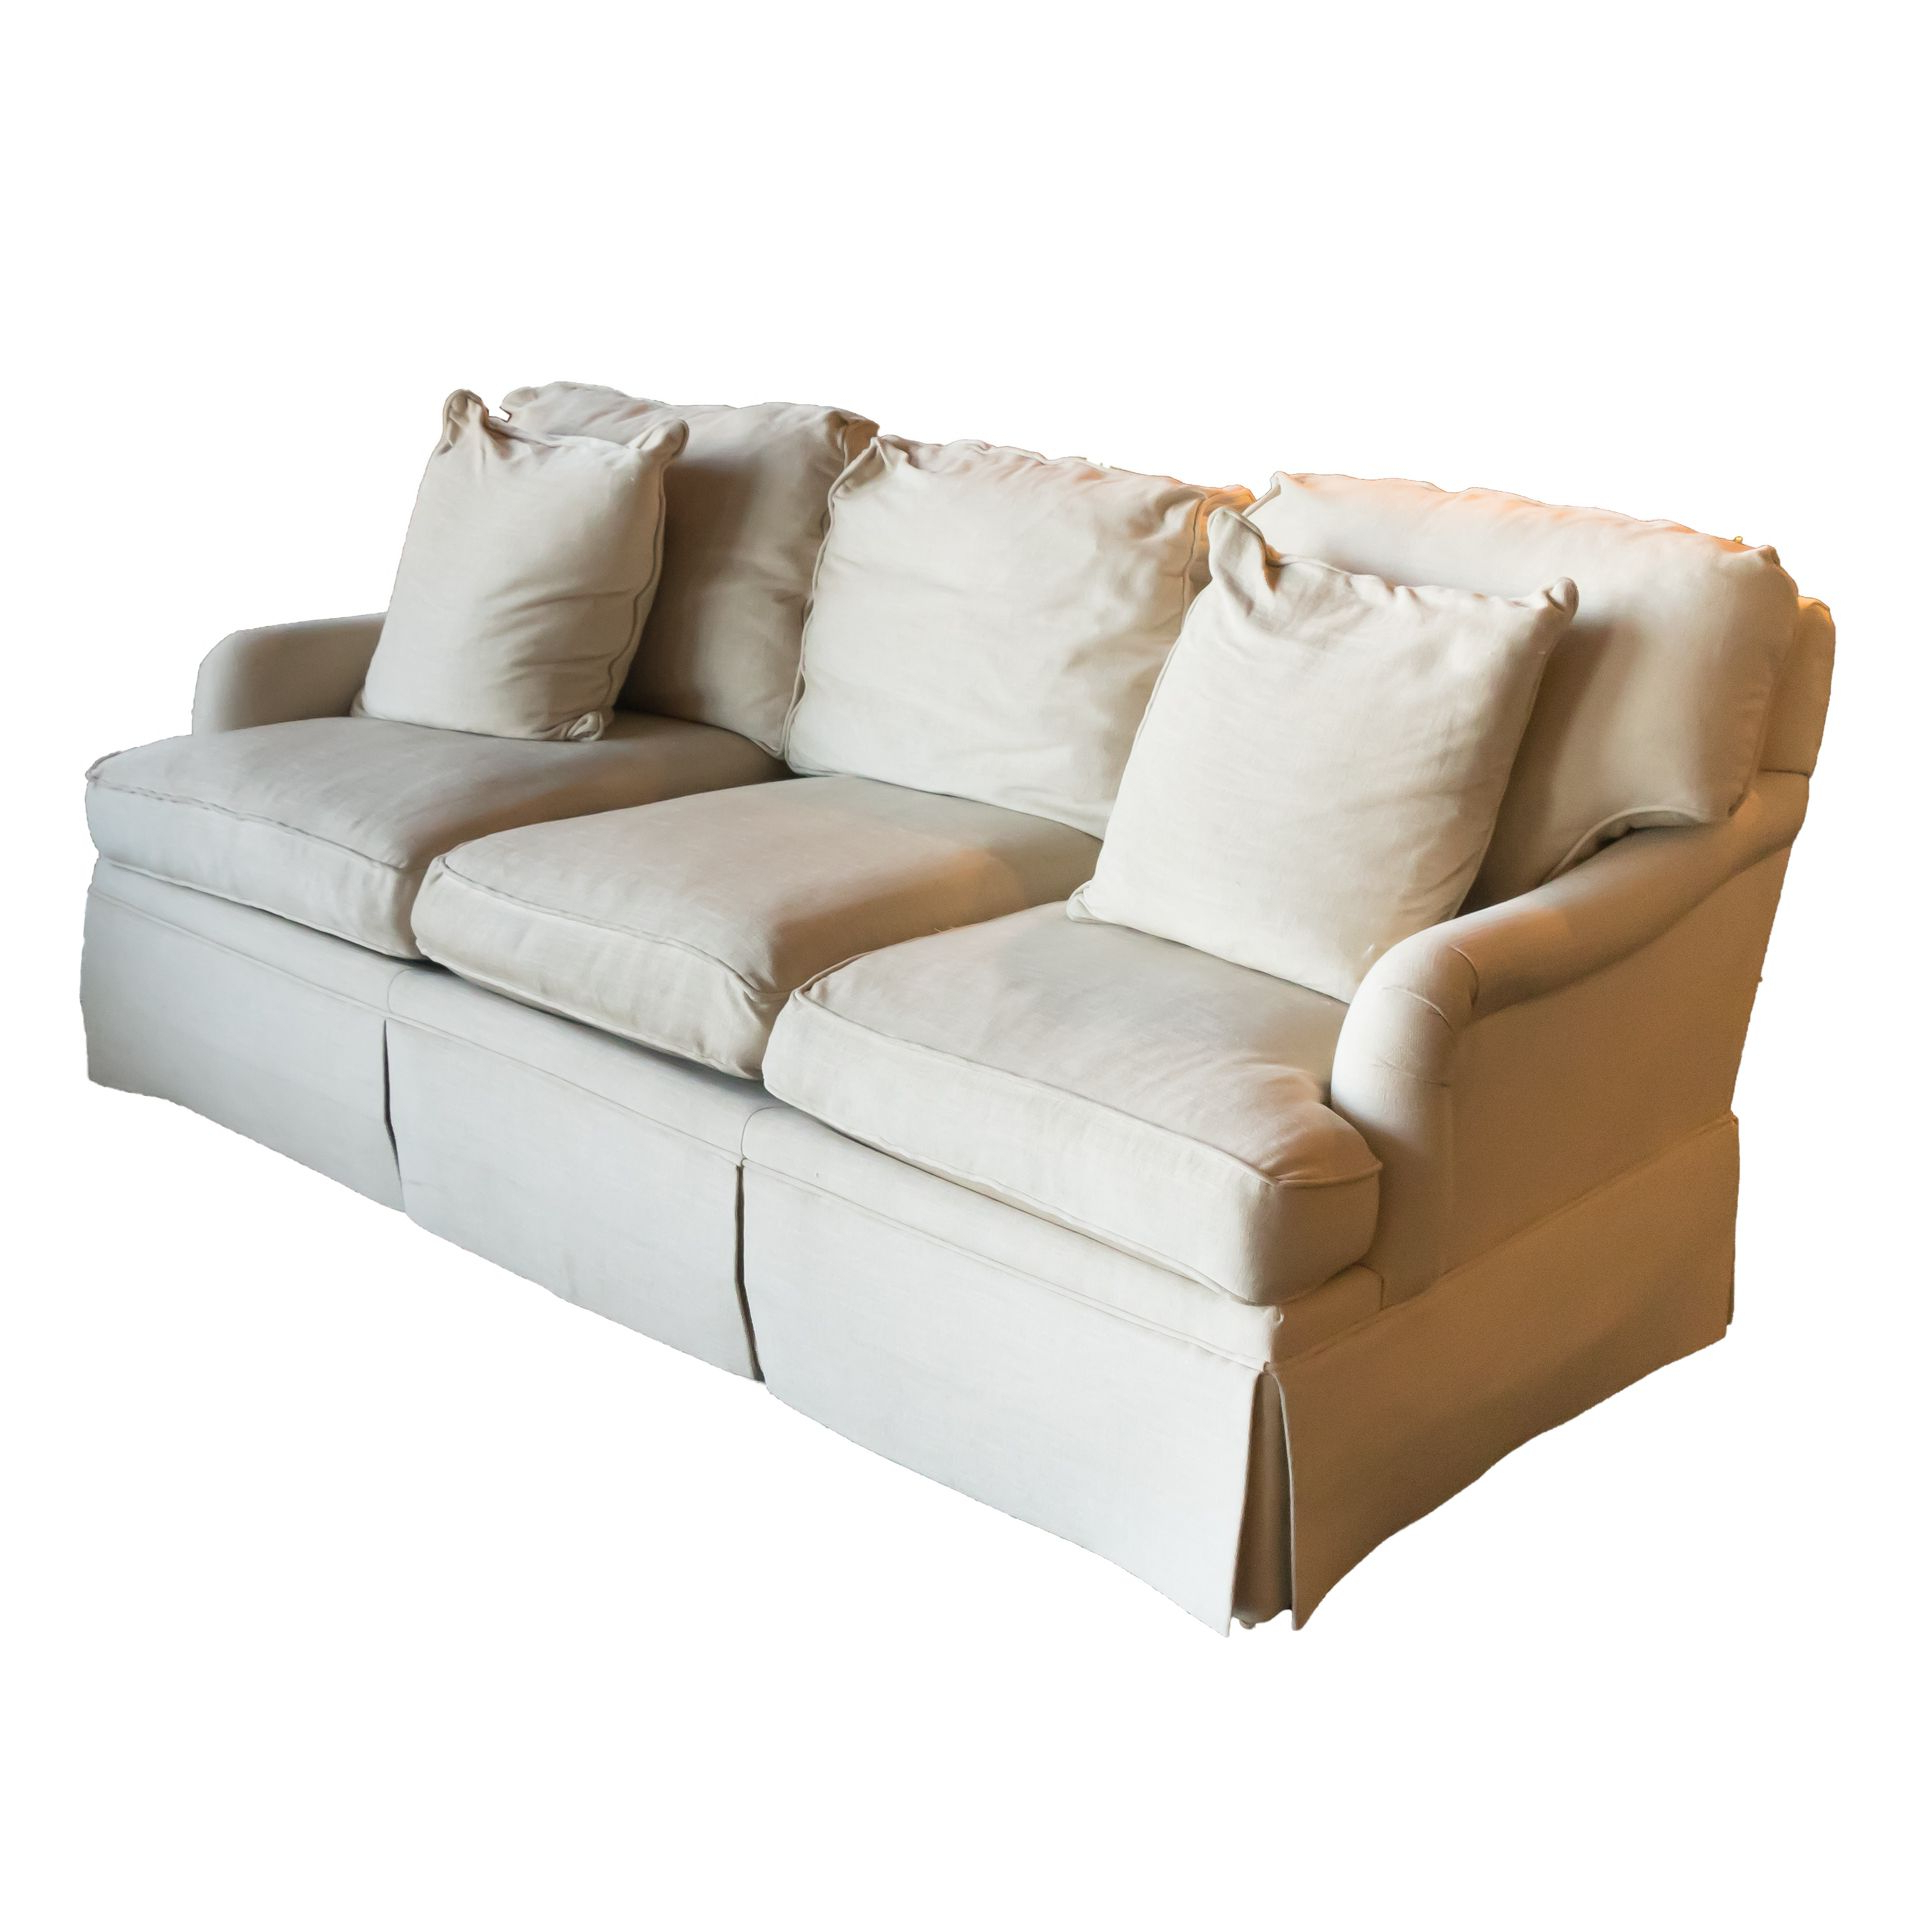 2019 Menifee Loveseats With Cushions With Regard To From Southwood Furniture, This Sofa Is Covered In A Neutral (View 22 of 25)